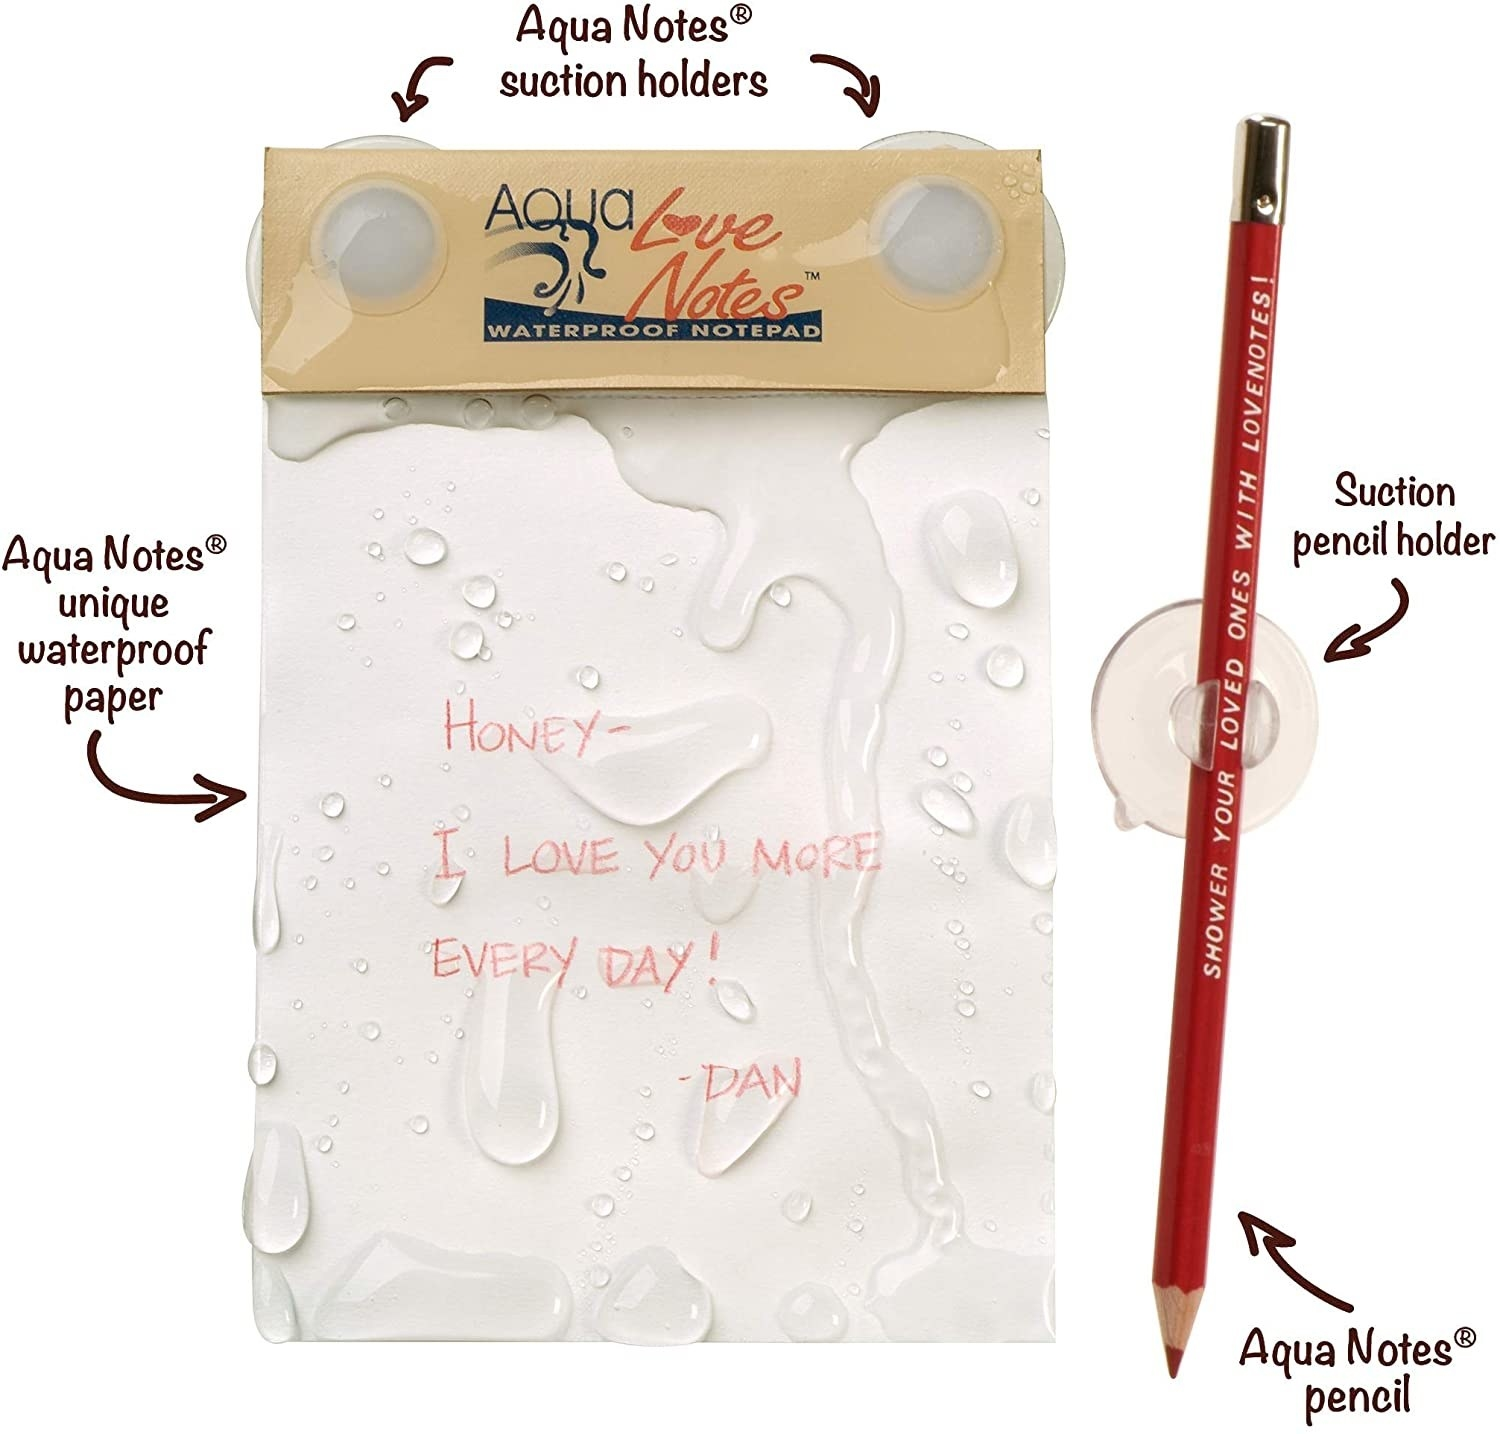 the note pad comes with suction cups to hold it to the wall, a pencil, and a pencil holder